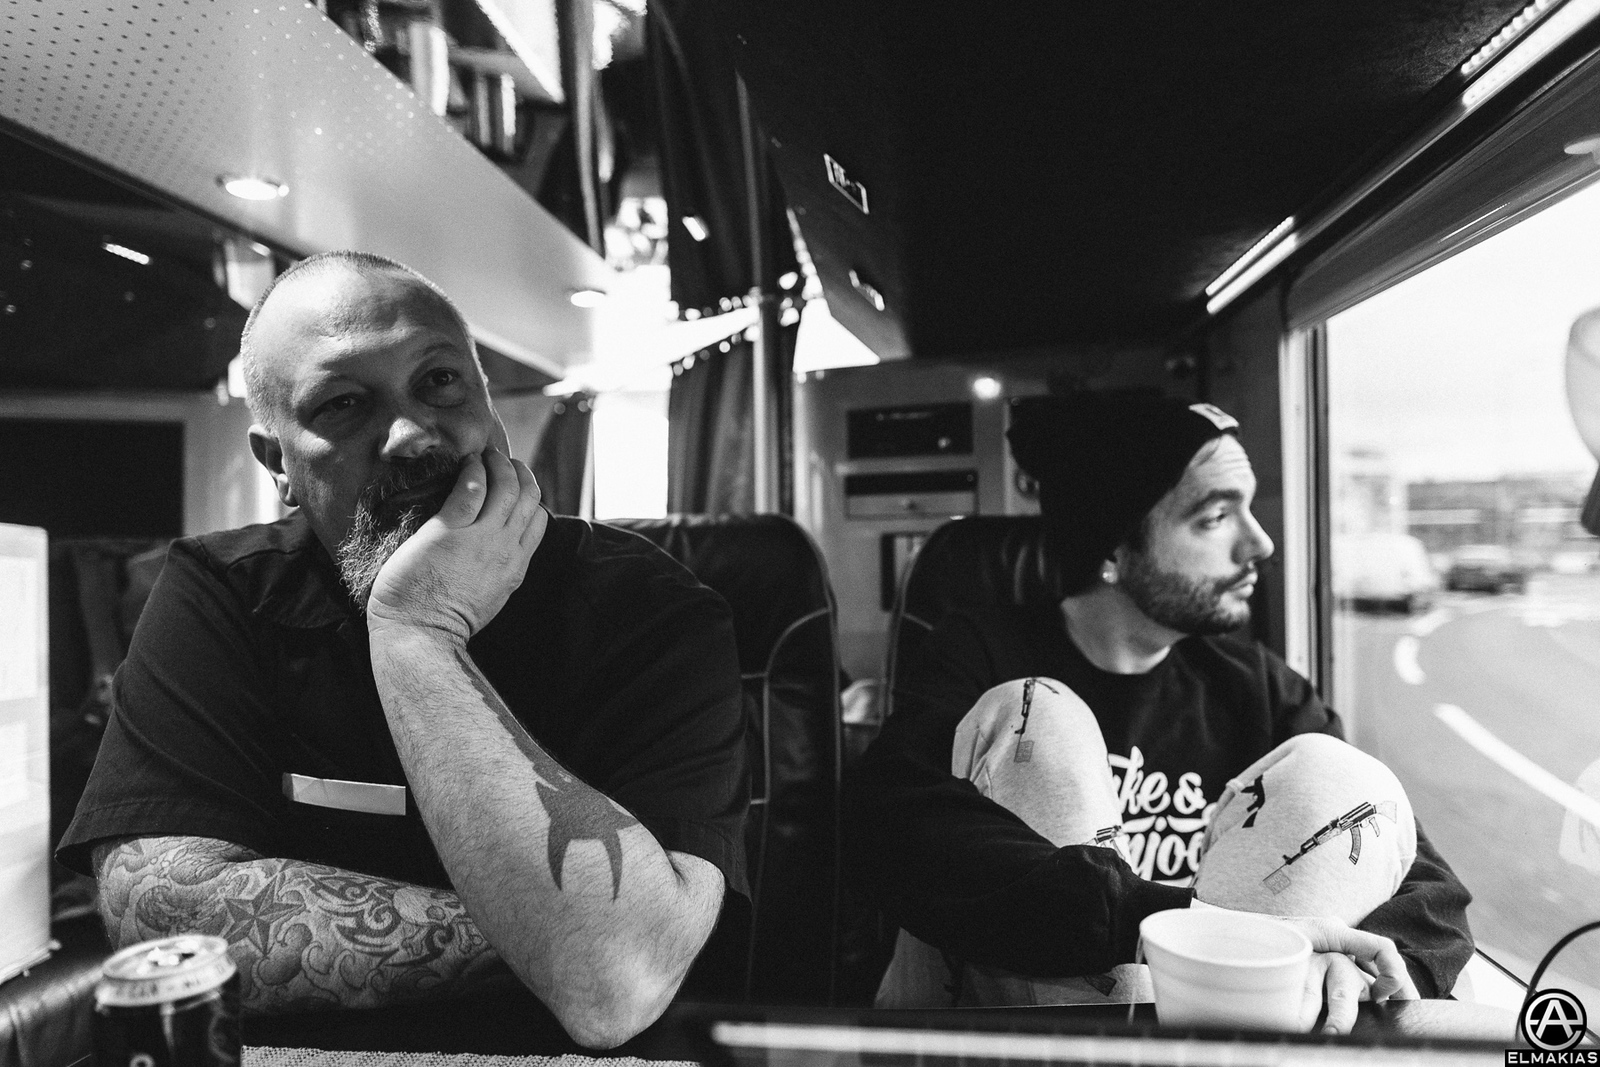 Morning of the show, Tour Manager Andrew Weiss and Jeremy McKinnon